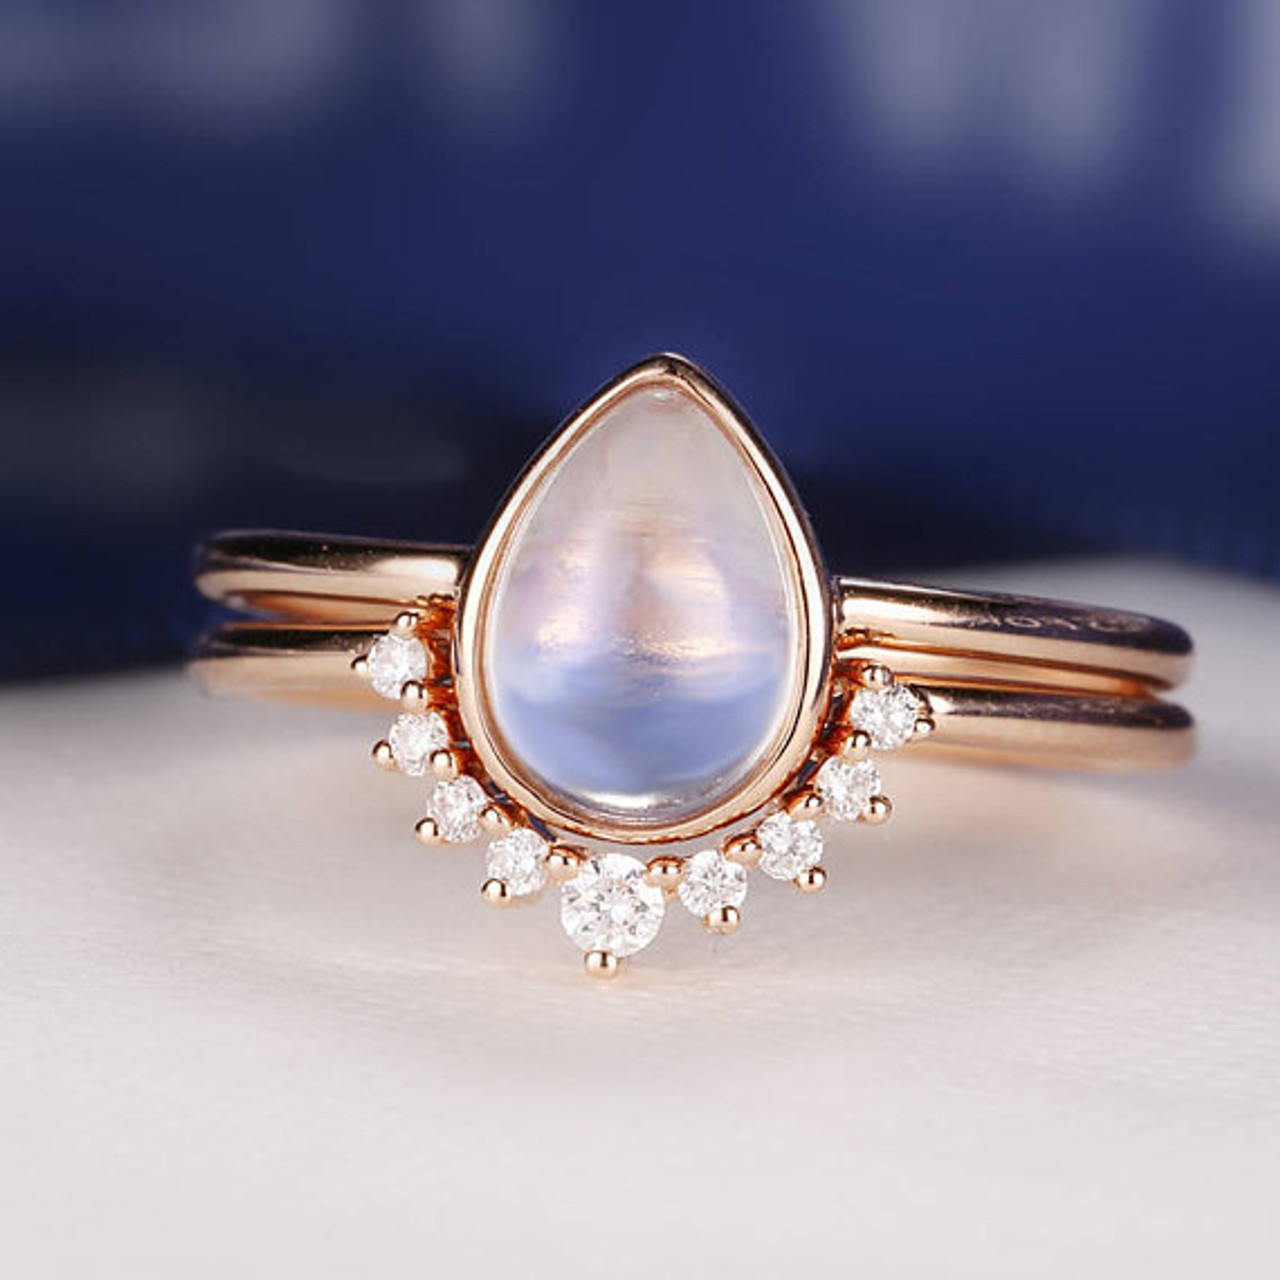 edition heart women jewelry sling gold han wedding online with product engagement store delicate huge rings love for plated ring popular